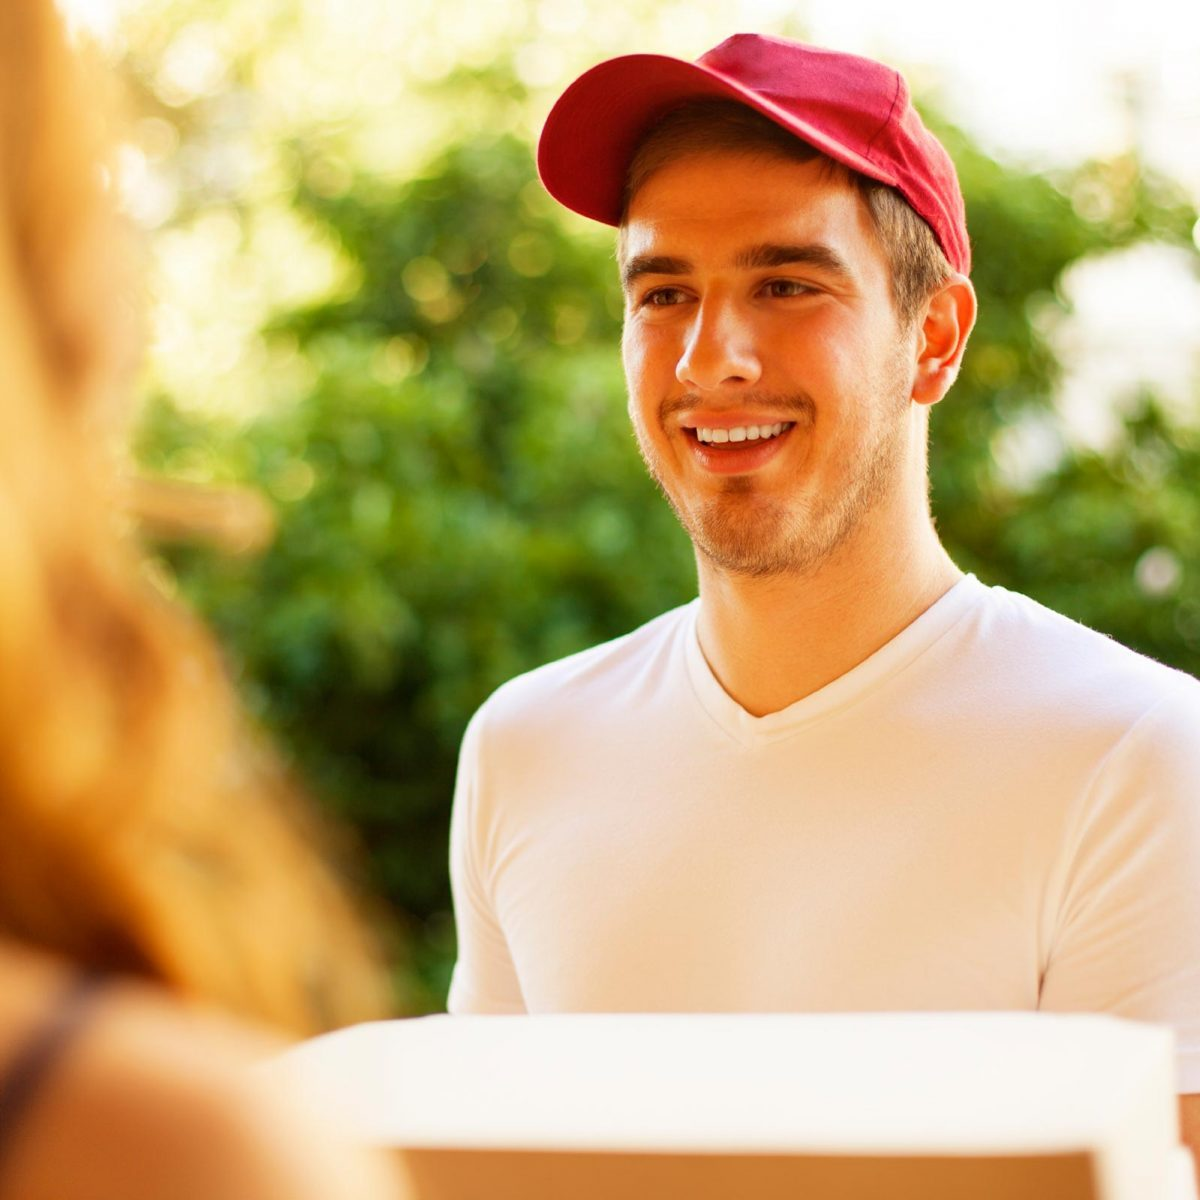 fbe15f903 27 Things Your Pizza Guy Won't Tell You | Reader's Digest